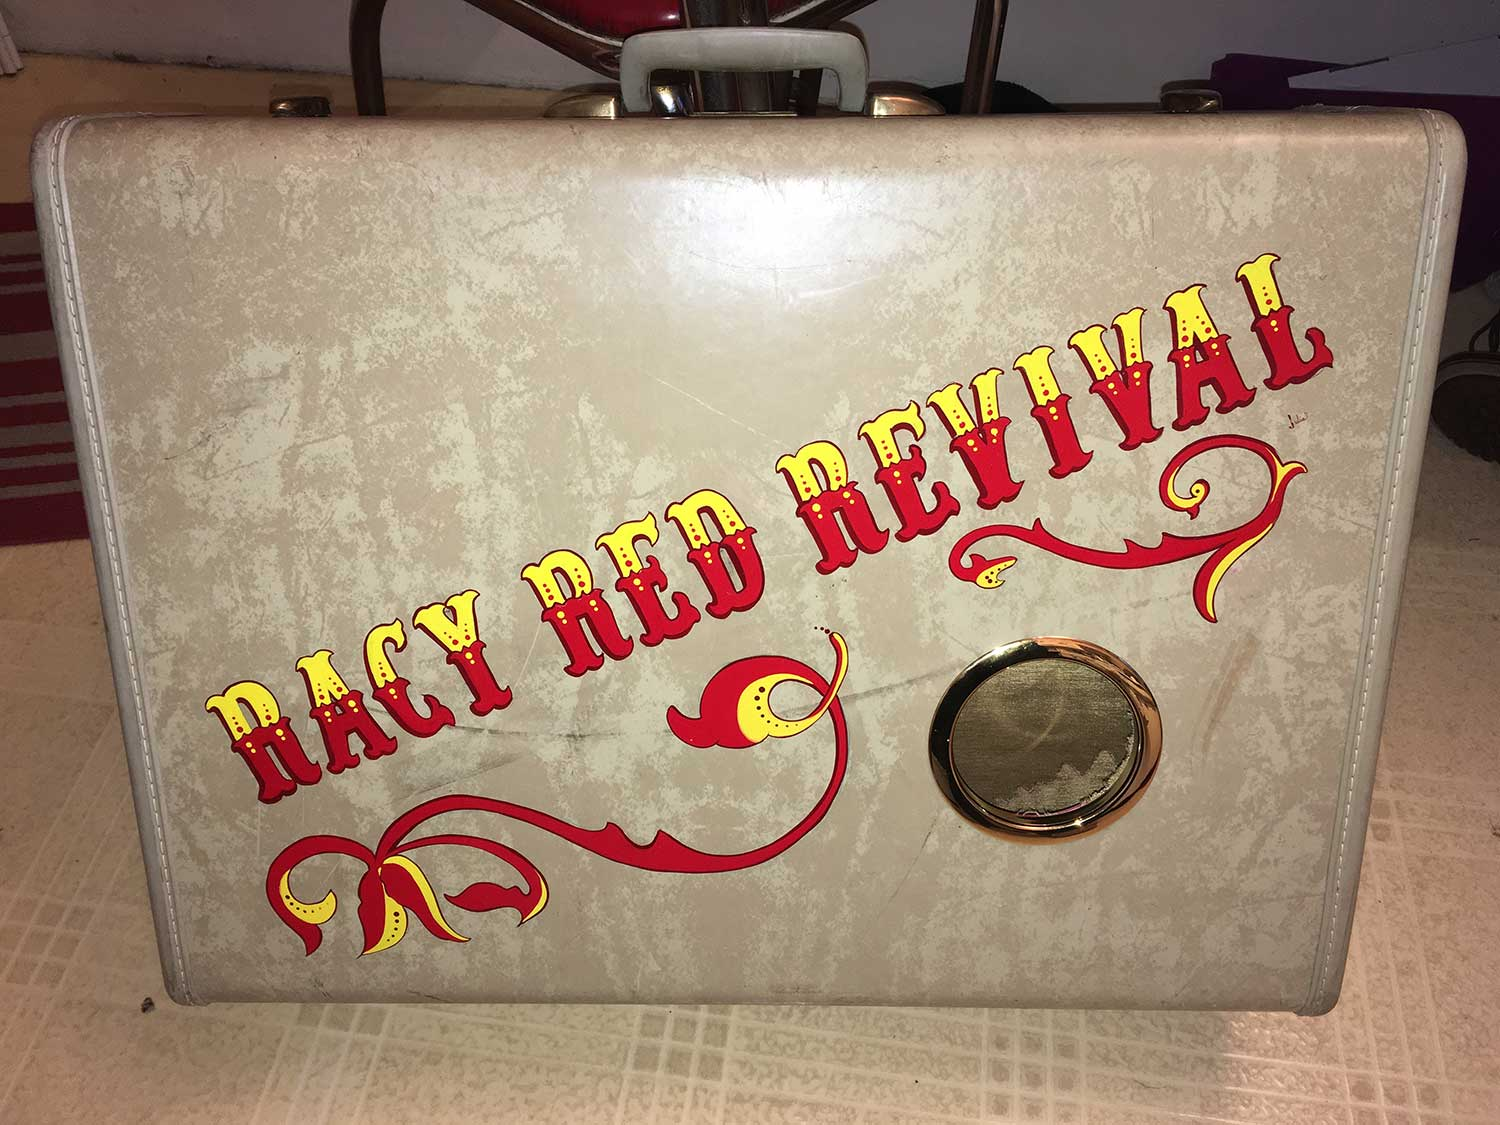 Lettering and pinstriping by Julie Fournier on a Vintage Suitcase turned into a speaker for the band Racy Red Revival